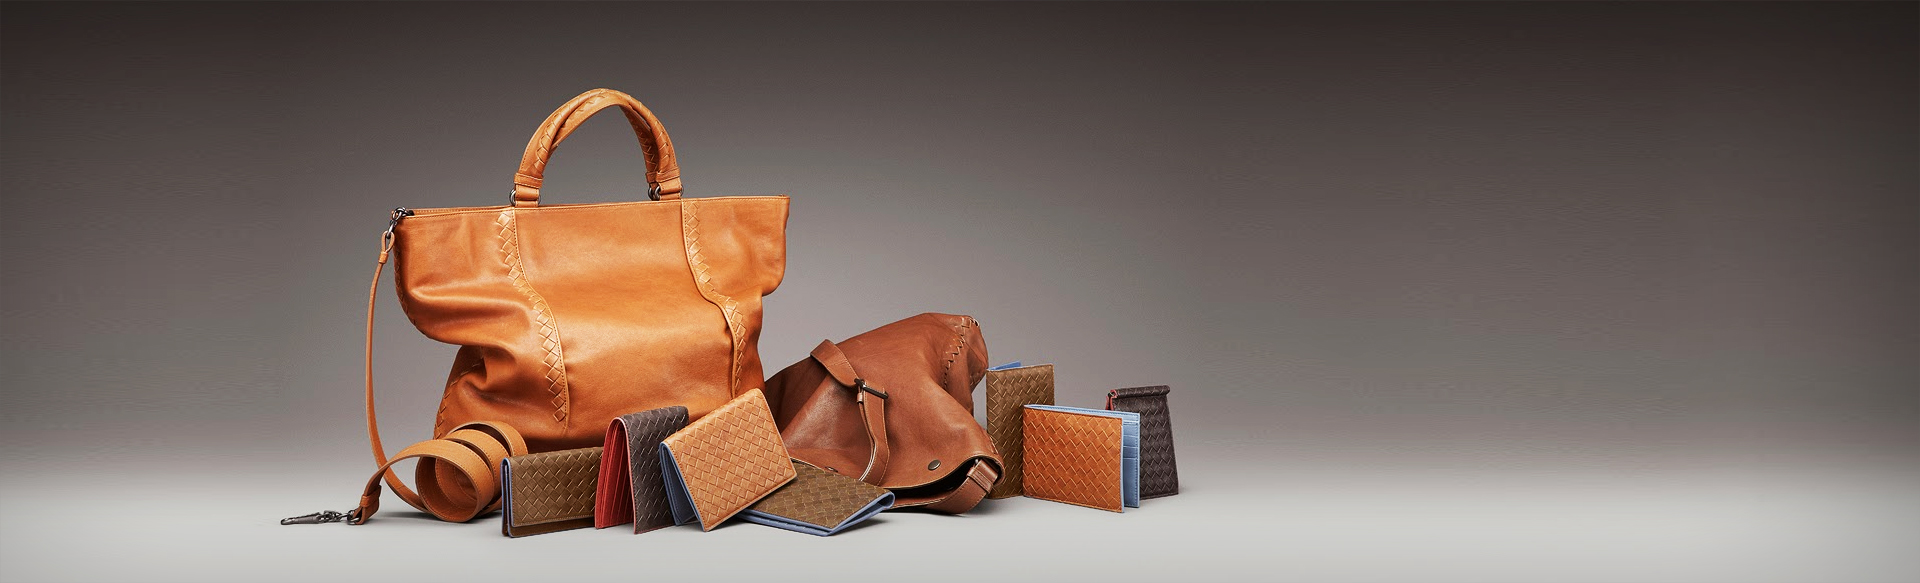 Ladies Leather Bags Manufacturers India - CEAGESP 403d29c24047